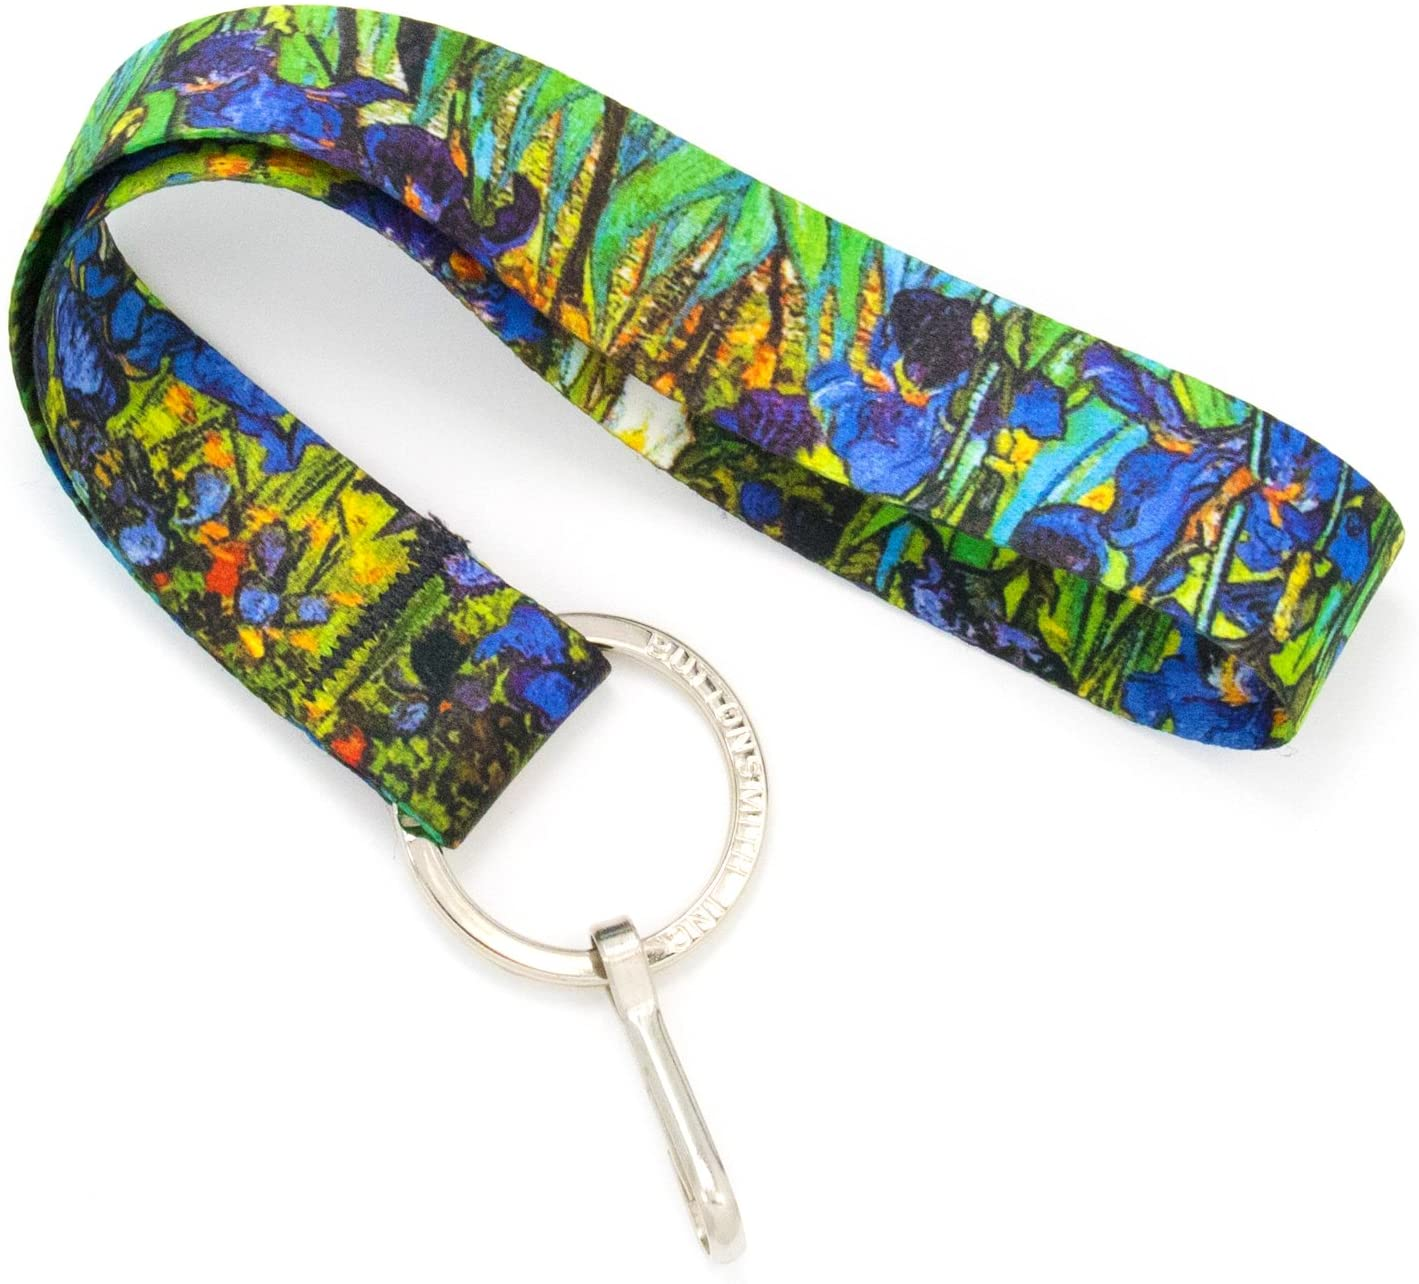 Buttonsmith Van Gogh Irises Wristlet Key Chain Lanyard - Short Length with Flat Key Ring and Clip - Made in the USA